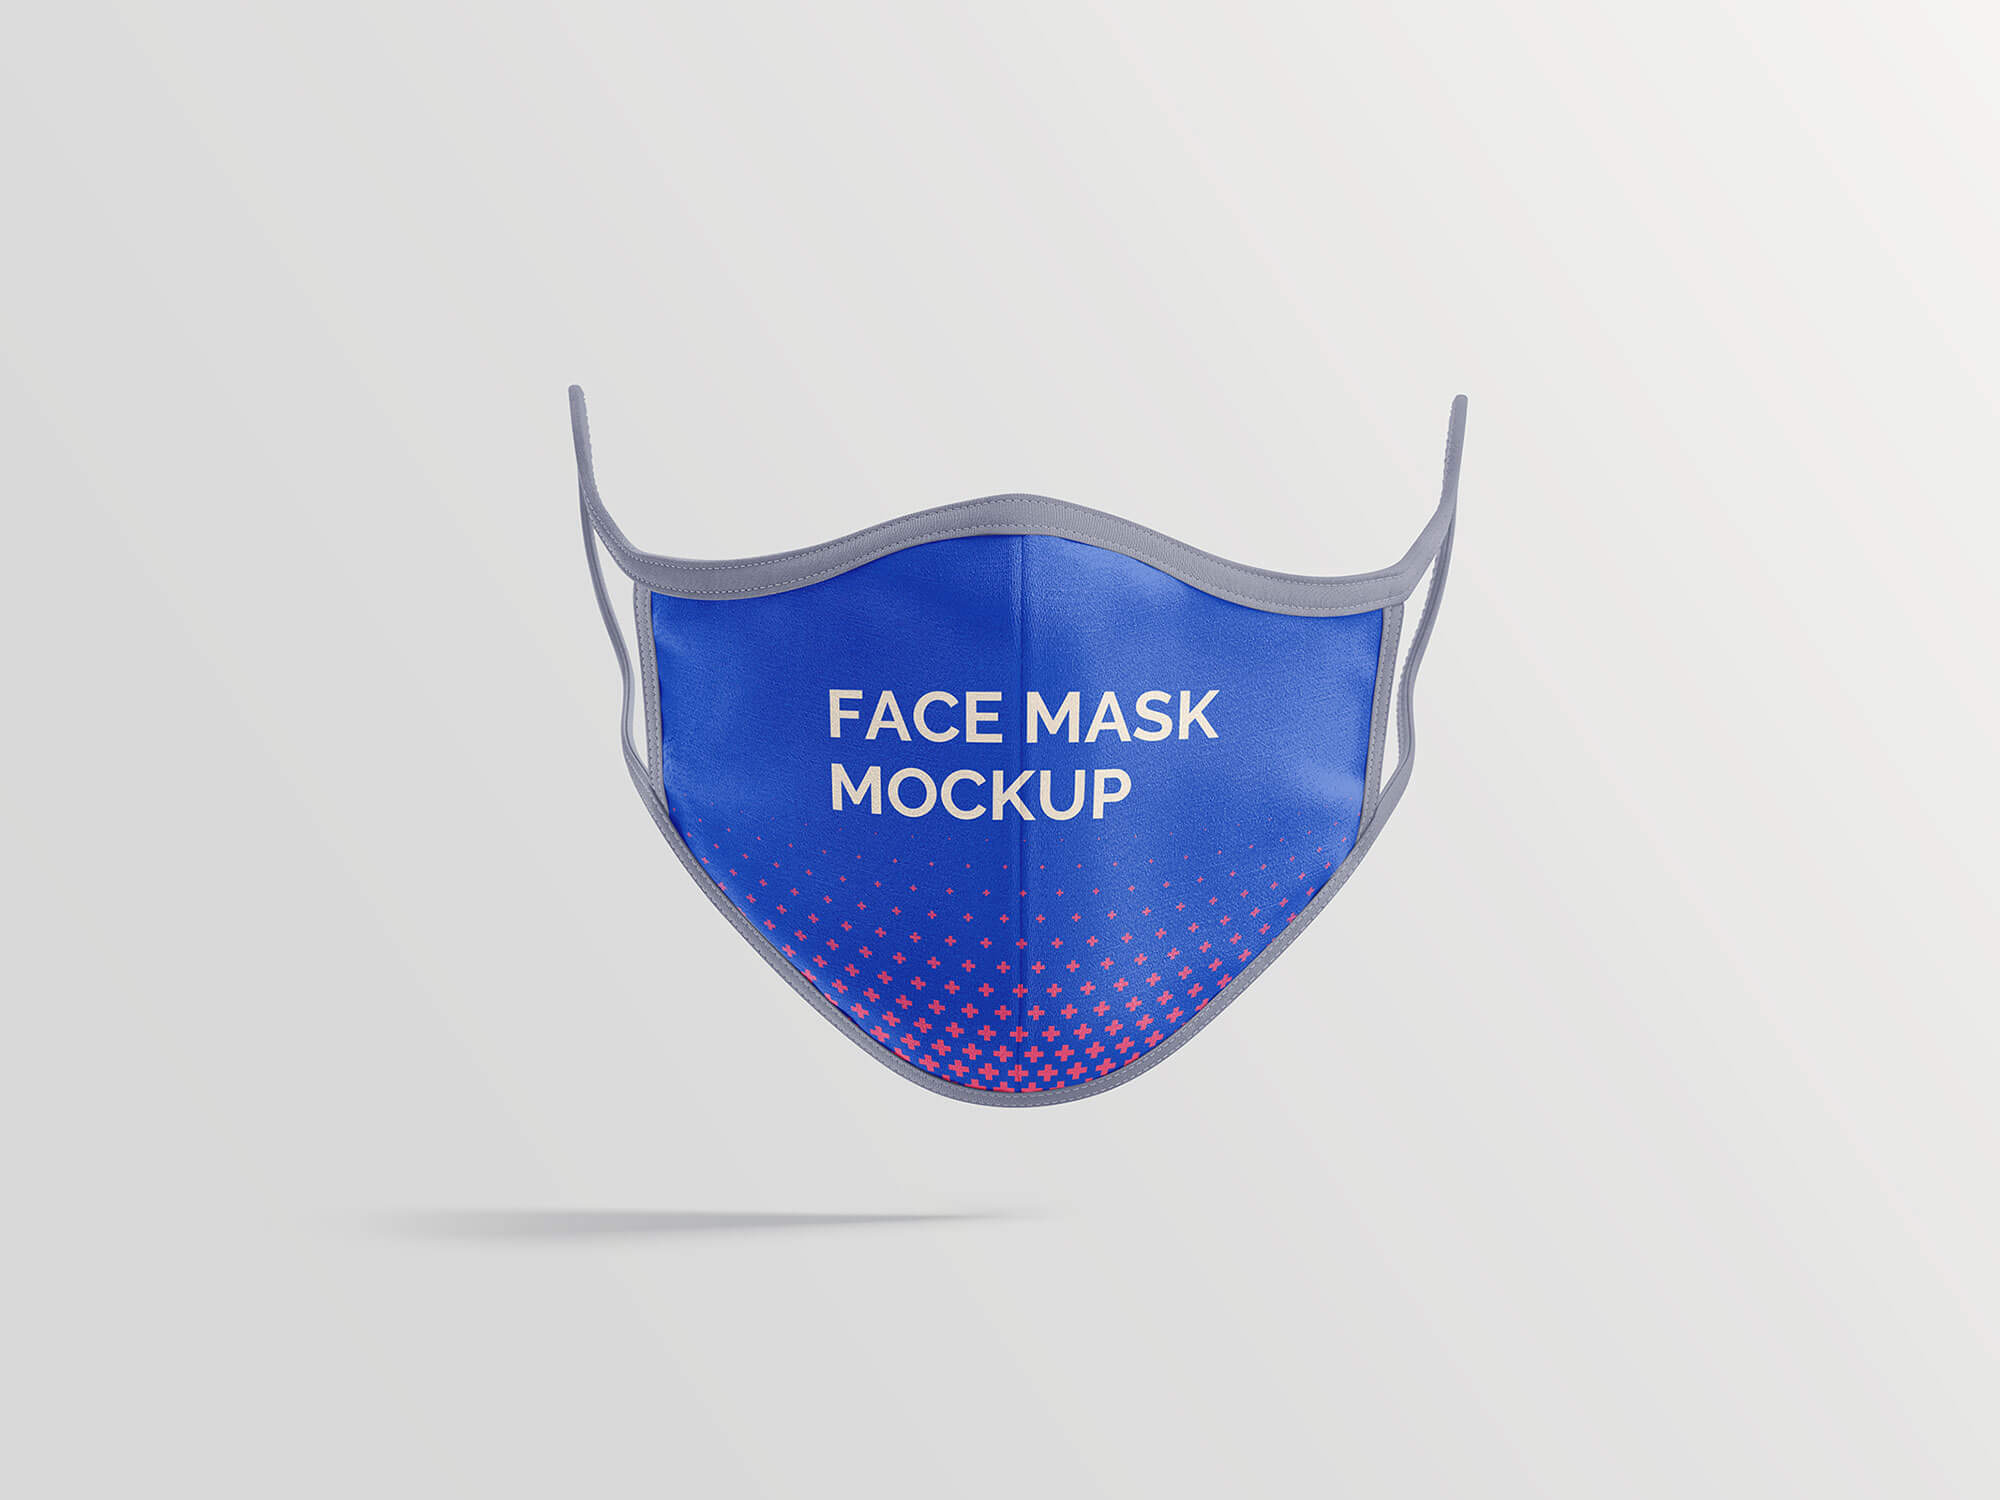 Free-Ultra-High-Resolution-Face-Mask-Mockup-PSD-Set